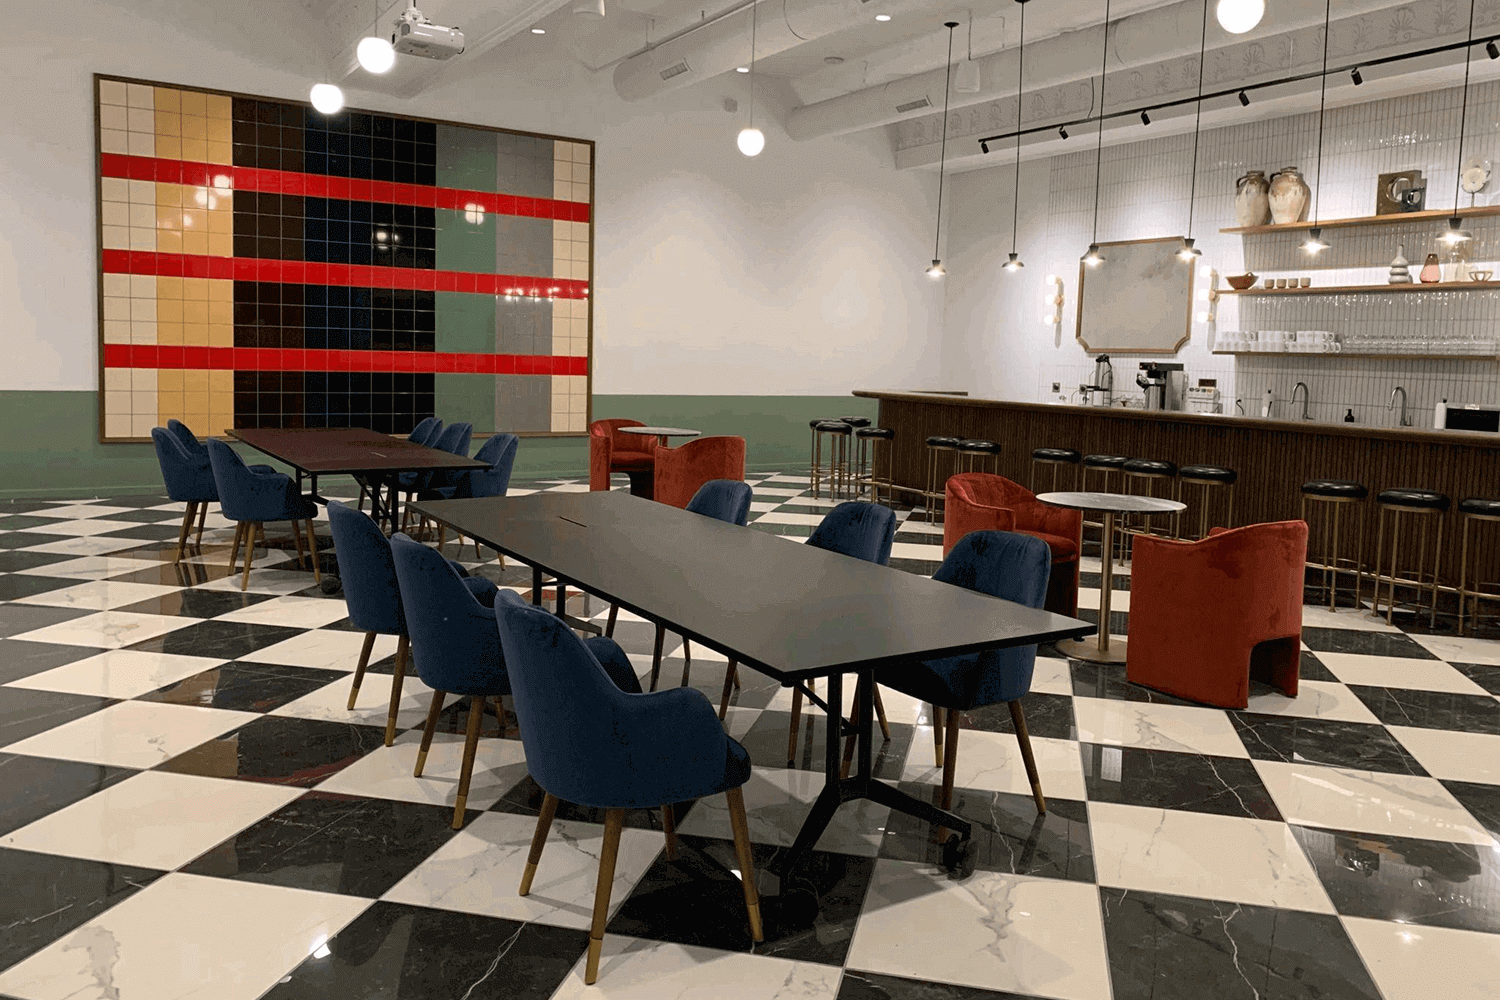 https://tableplacechairs.com/wp-content/uploads/2021/05/MINDSPACE-PHILADELPHIA-for-web-3.png